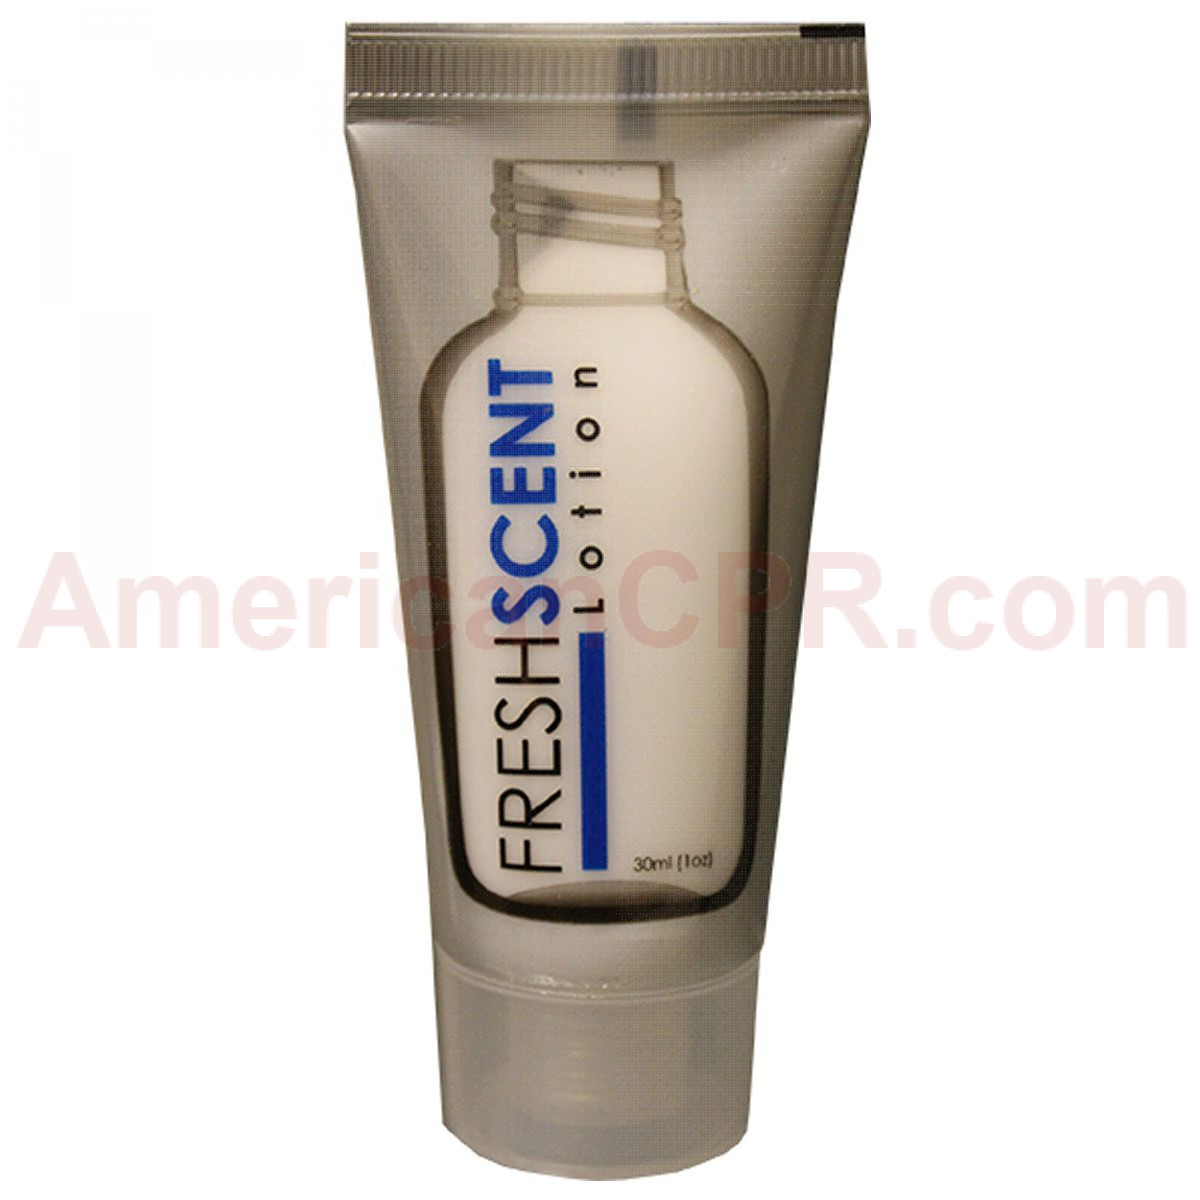 Lotion Tube, 1 oz - Generic